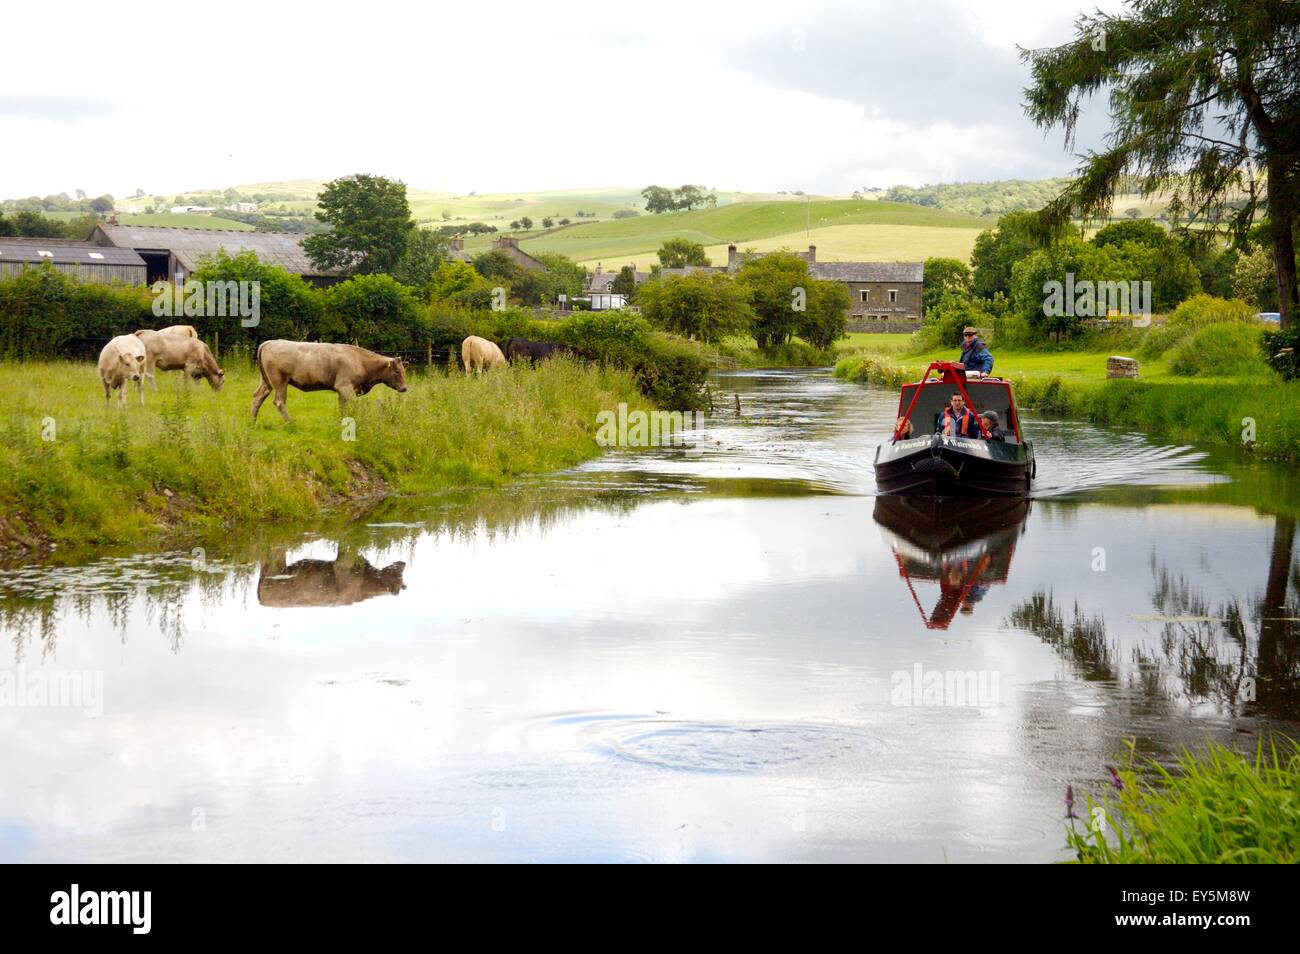 Lancaster Canal Trust trip boat near Crooklands on 'Northern Reaches' of Lancaster Canal, Cumbria, England - Stock Image